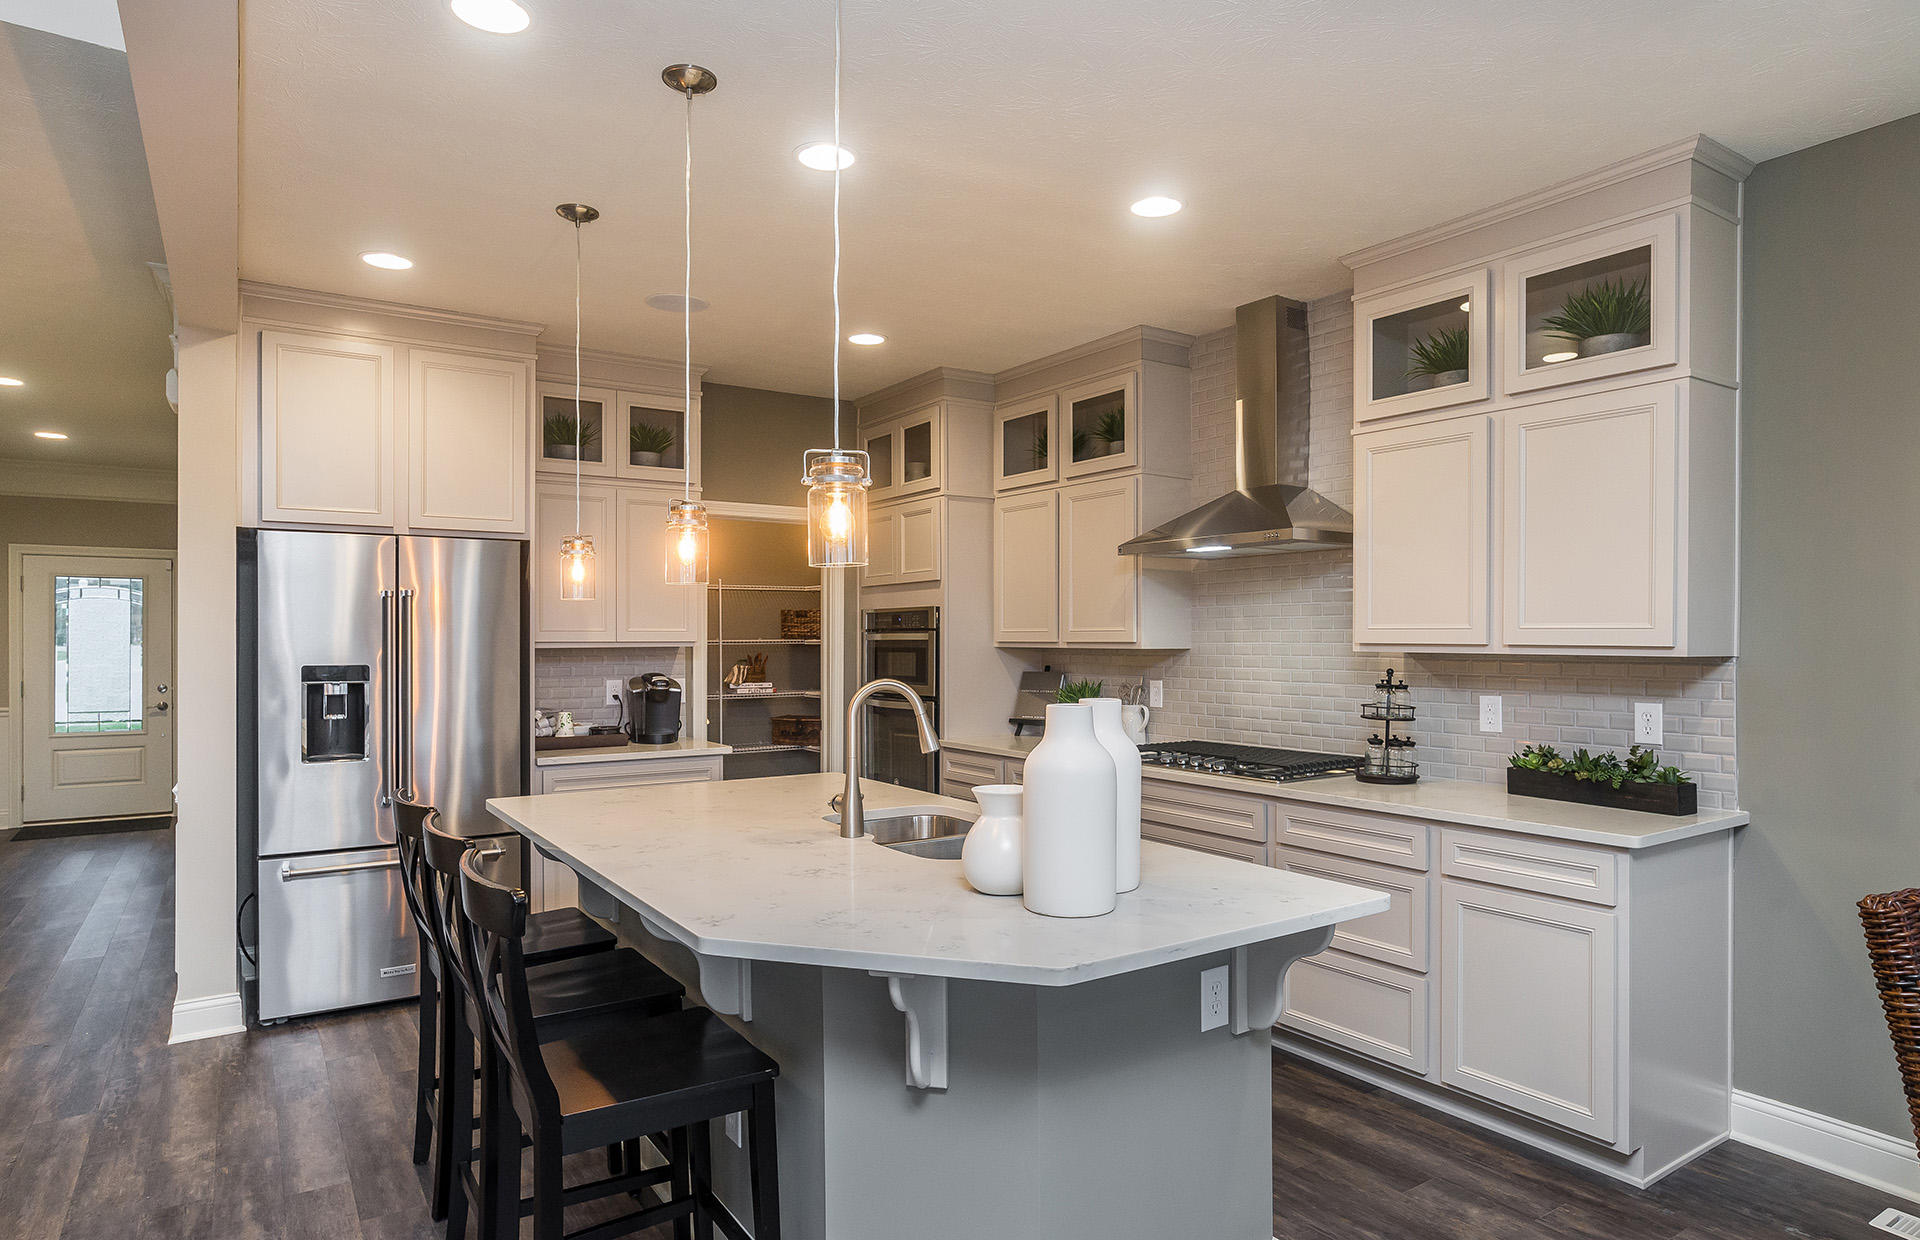 Bear Creek by Pulte Homes image 3